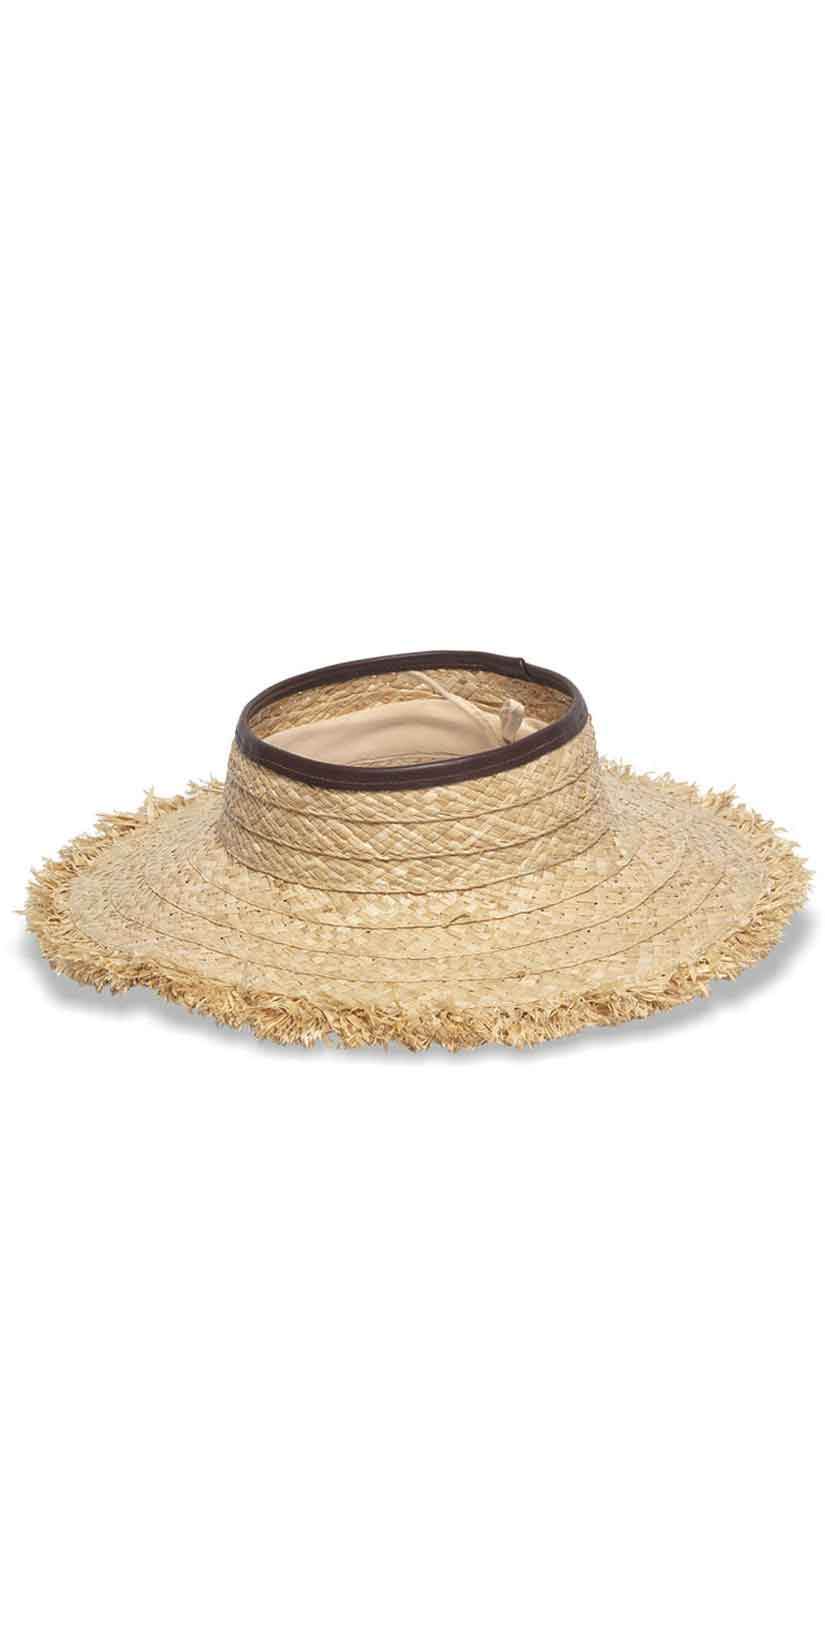 Nikki Beach Porto Heli Hat in Natural/Brown: